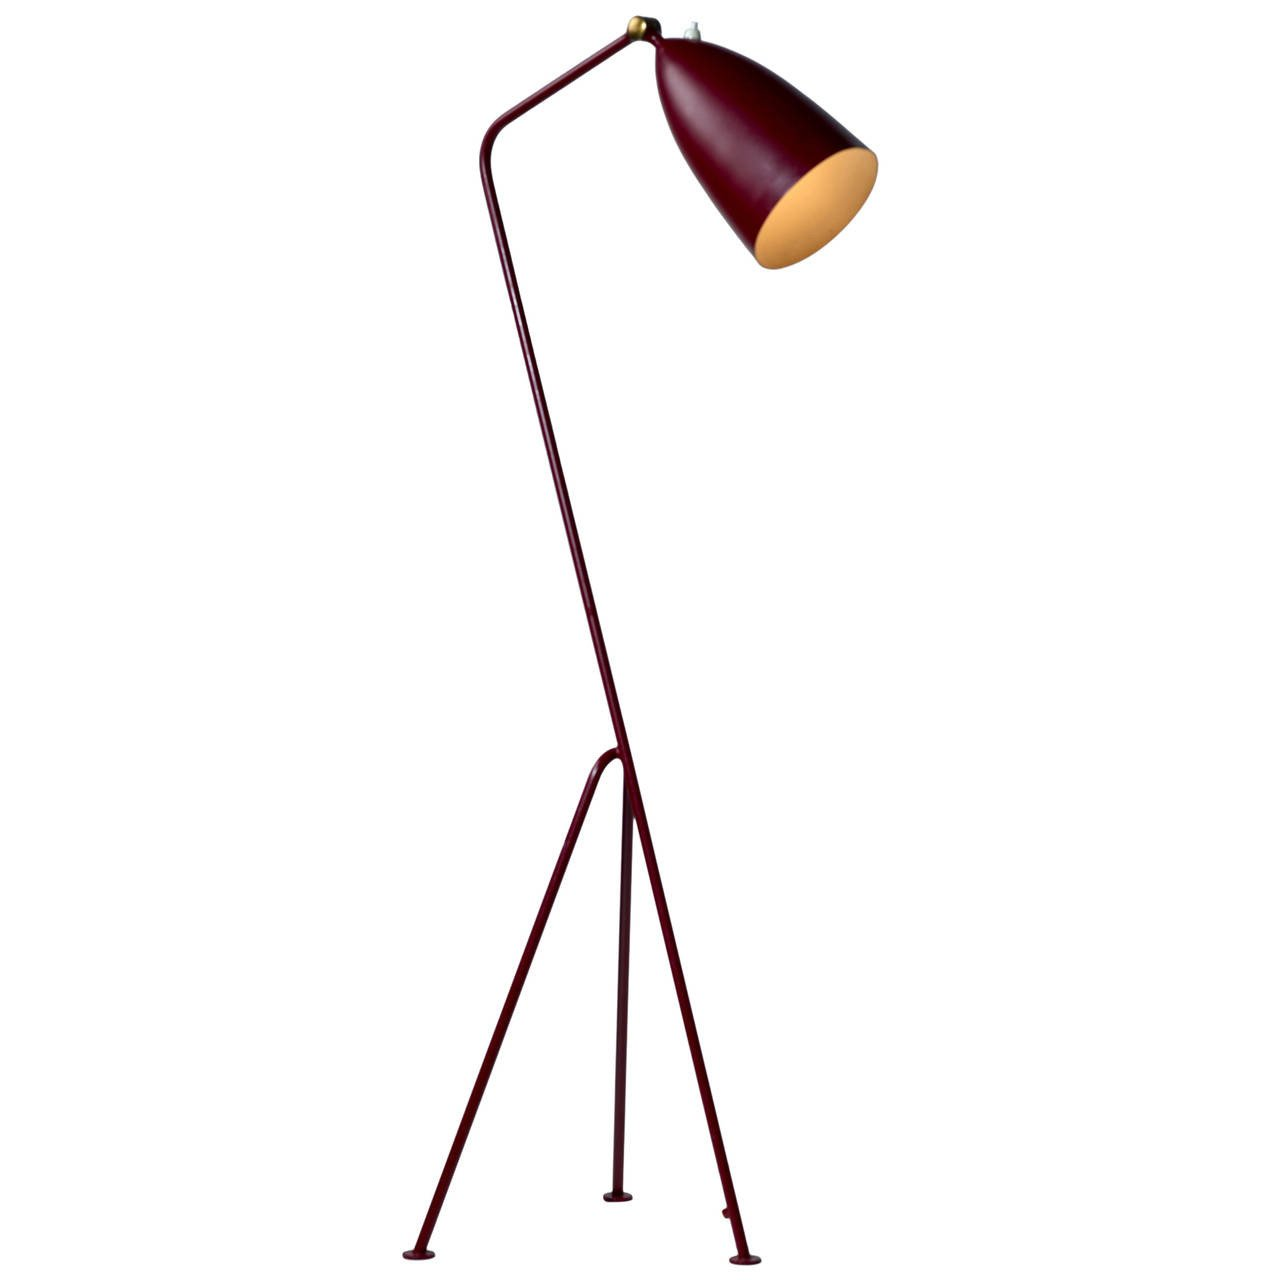 "[SOLD] Early Greta Magnusson-Grossman ""Grasshopper"" Floor Lamp, by Bergboms Malmö, Model 831 - The Exchange Int"